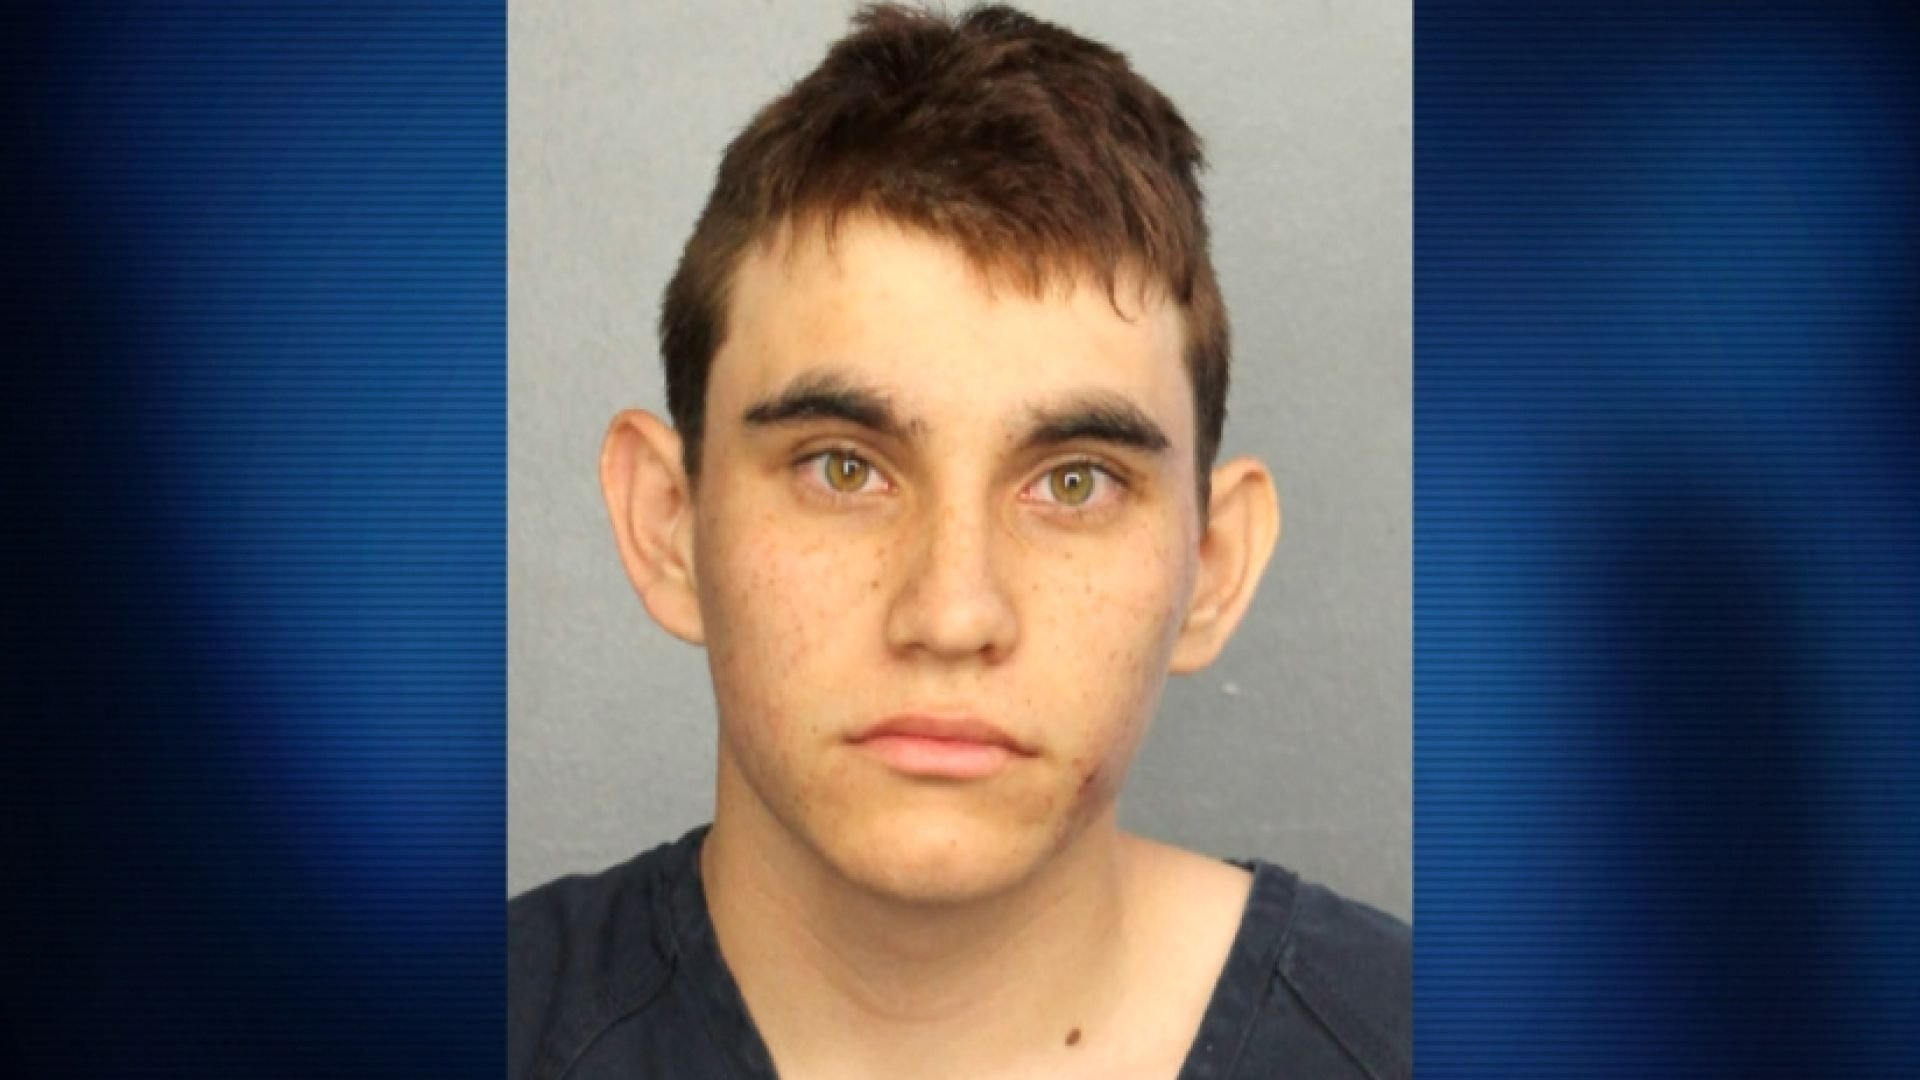 Nikolas Cruz is charged with 17 counts of murder for a school shooting in Parkland, Florida.